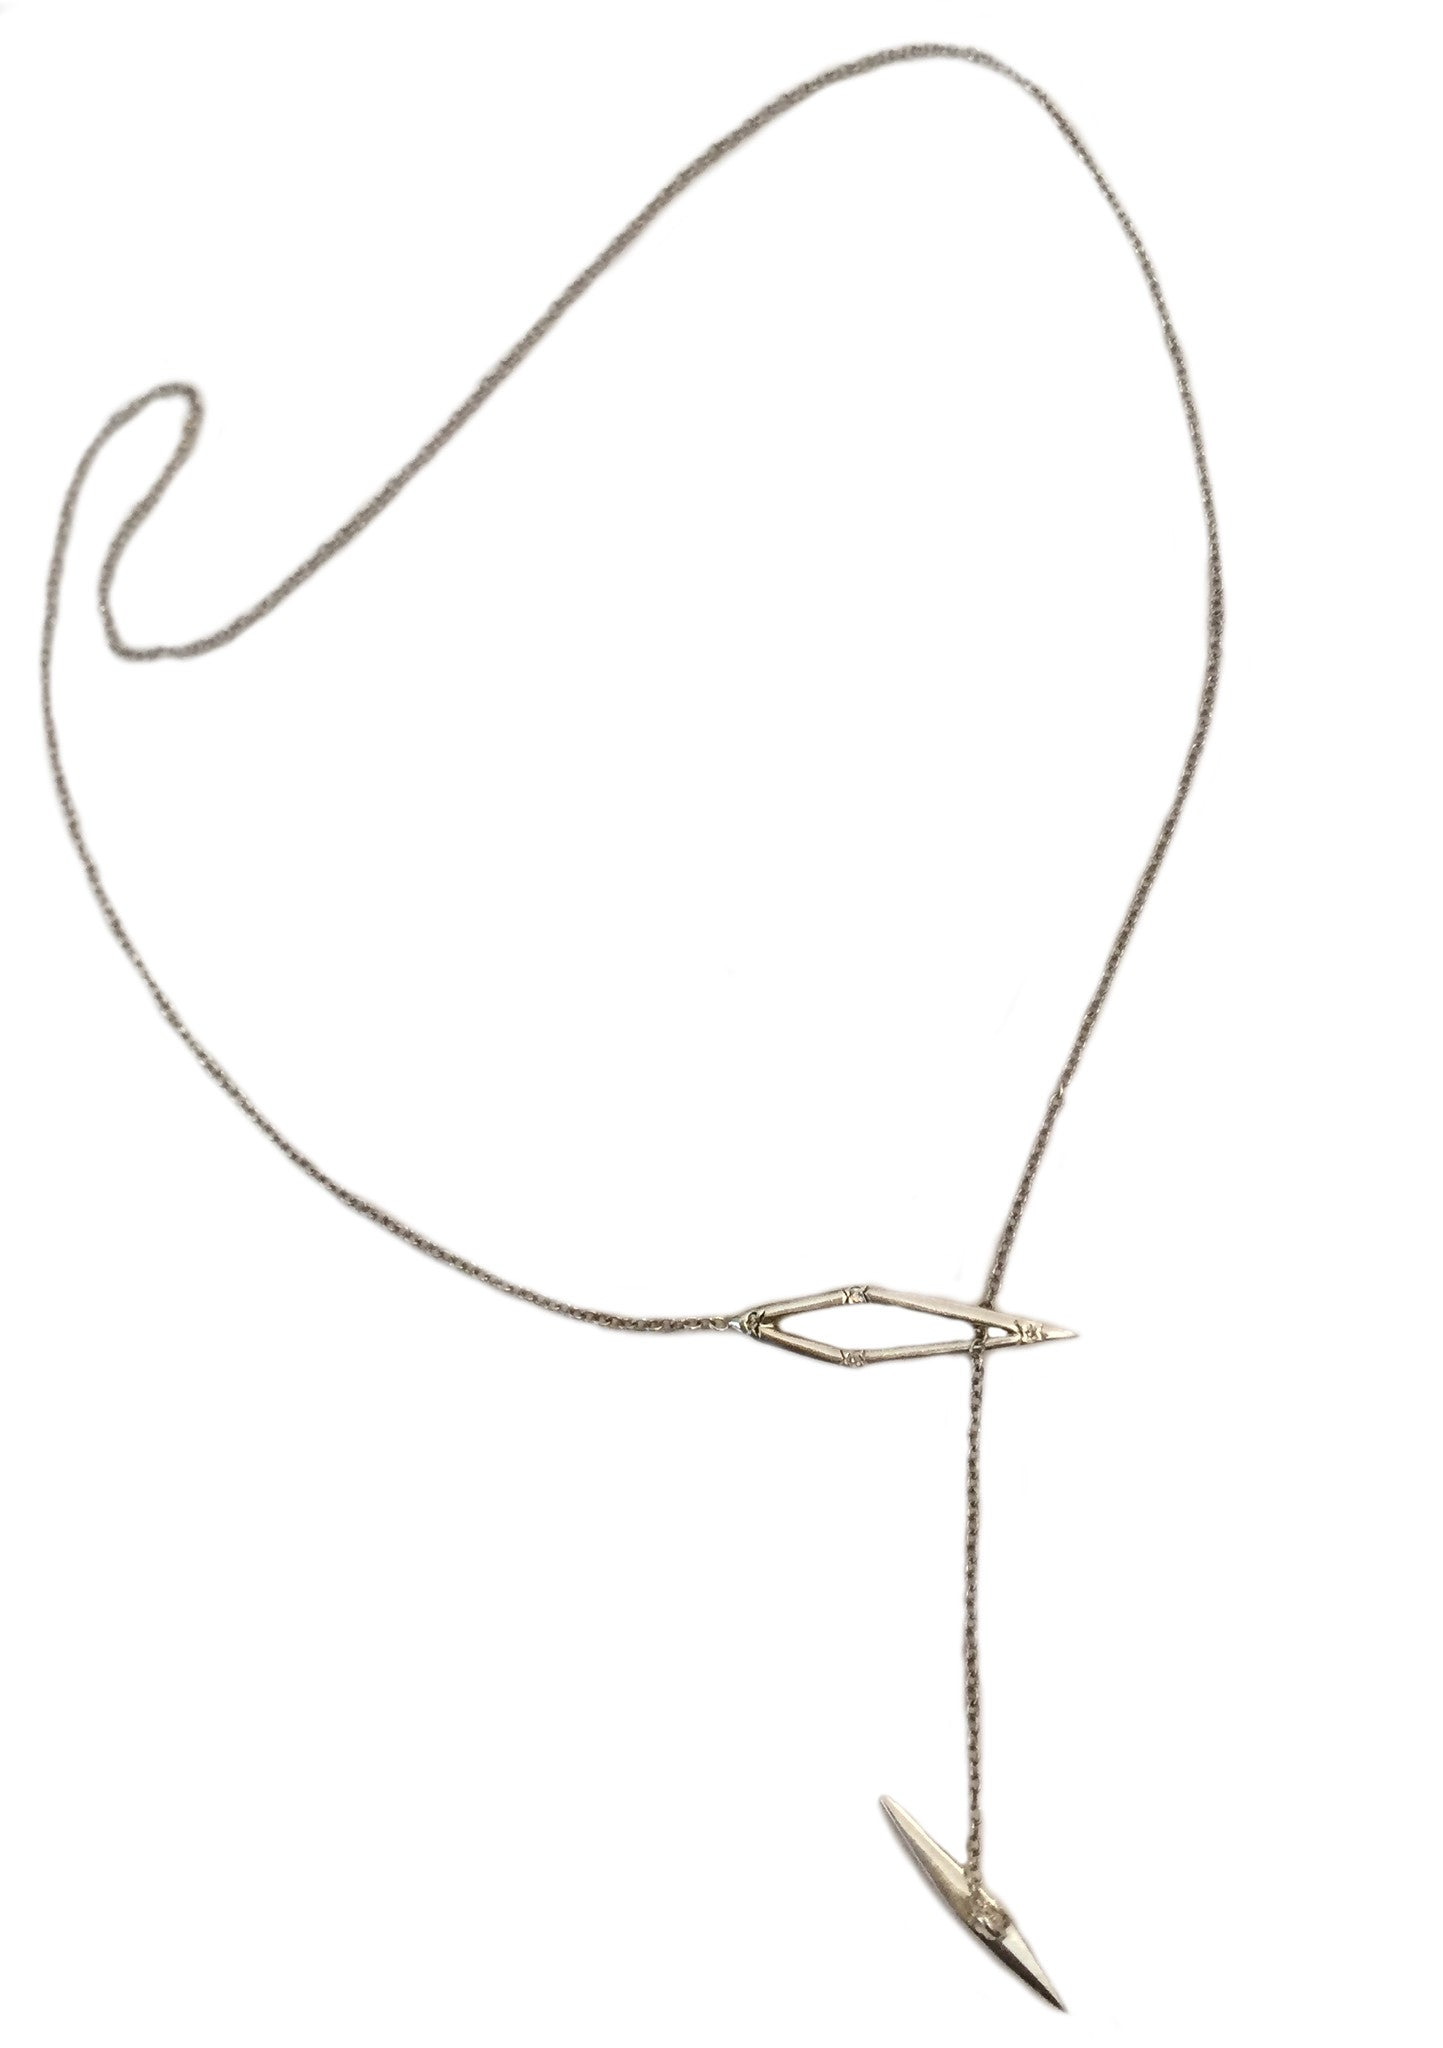 Wendy Nichol delicate Chain Choker Toggle Necklace